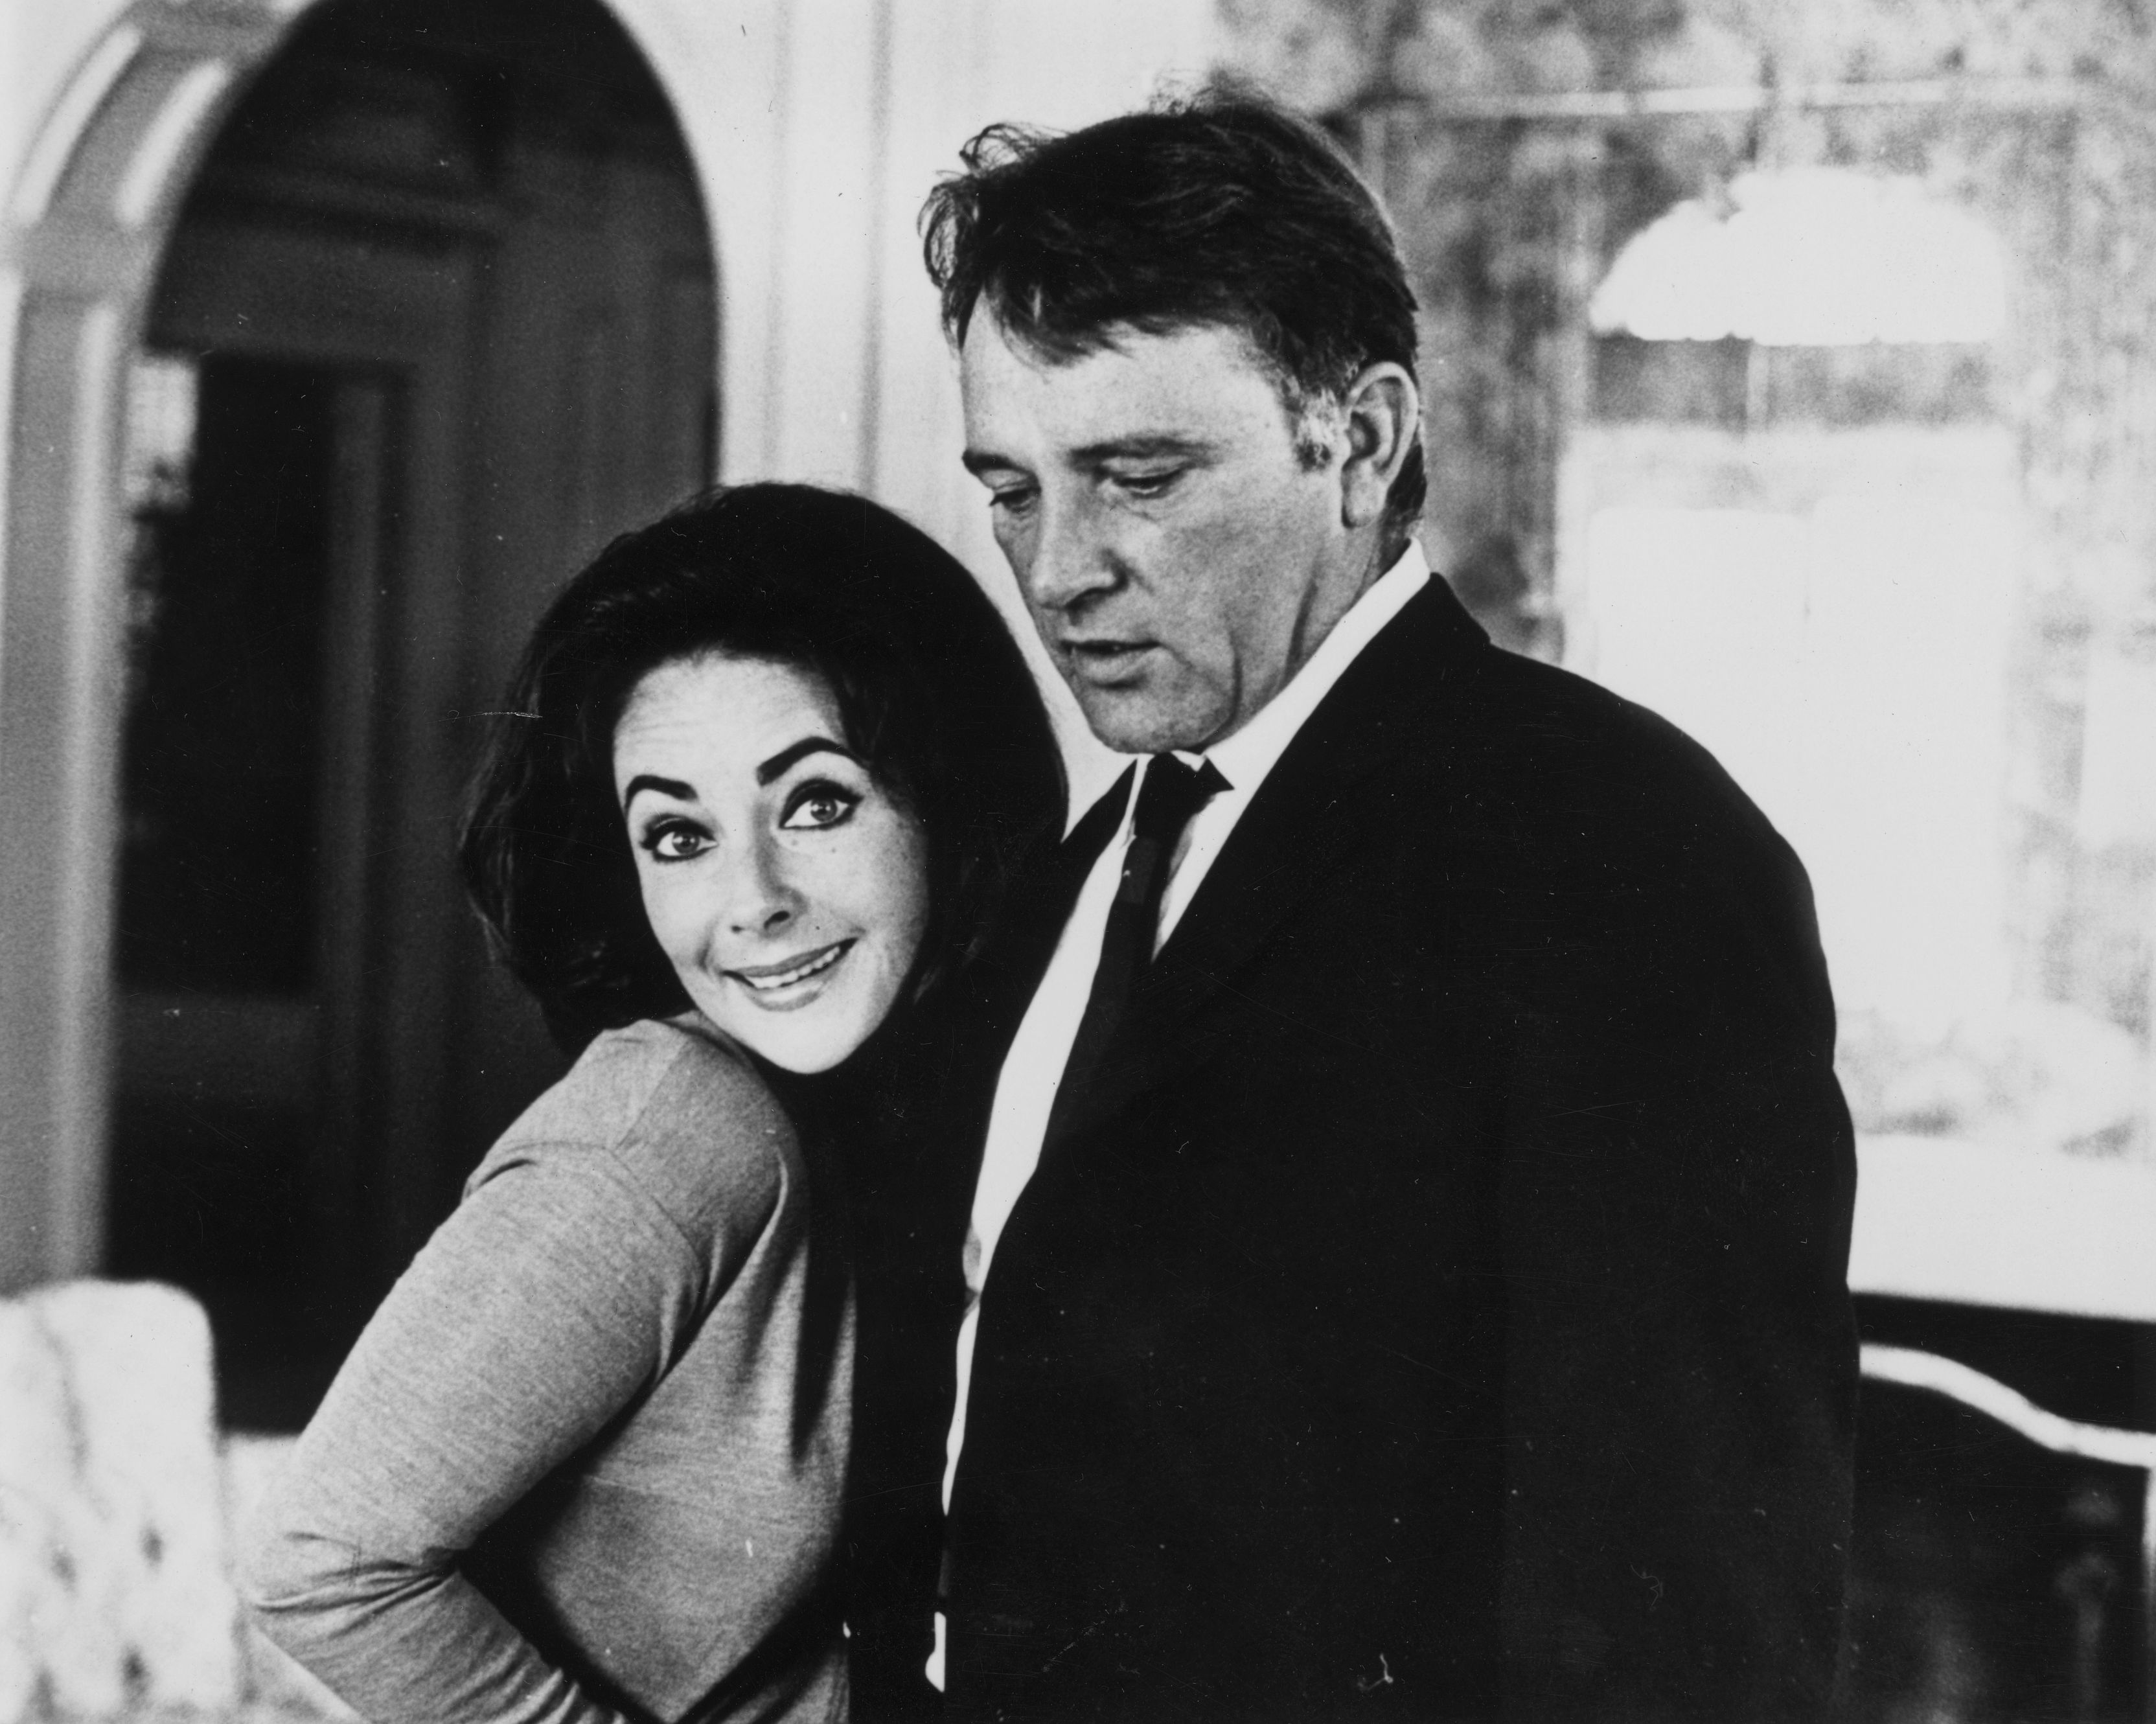 American actress Elizabeth Taylor with husband Welsh actor Richard Burton (1925 - 1984) in Los Angeles in 1963. | Source: Getty Images